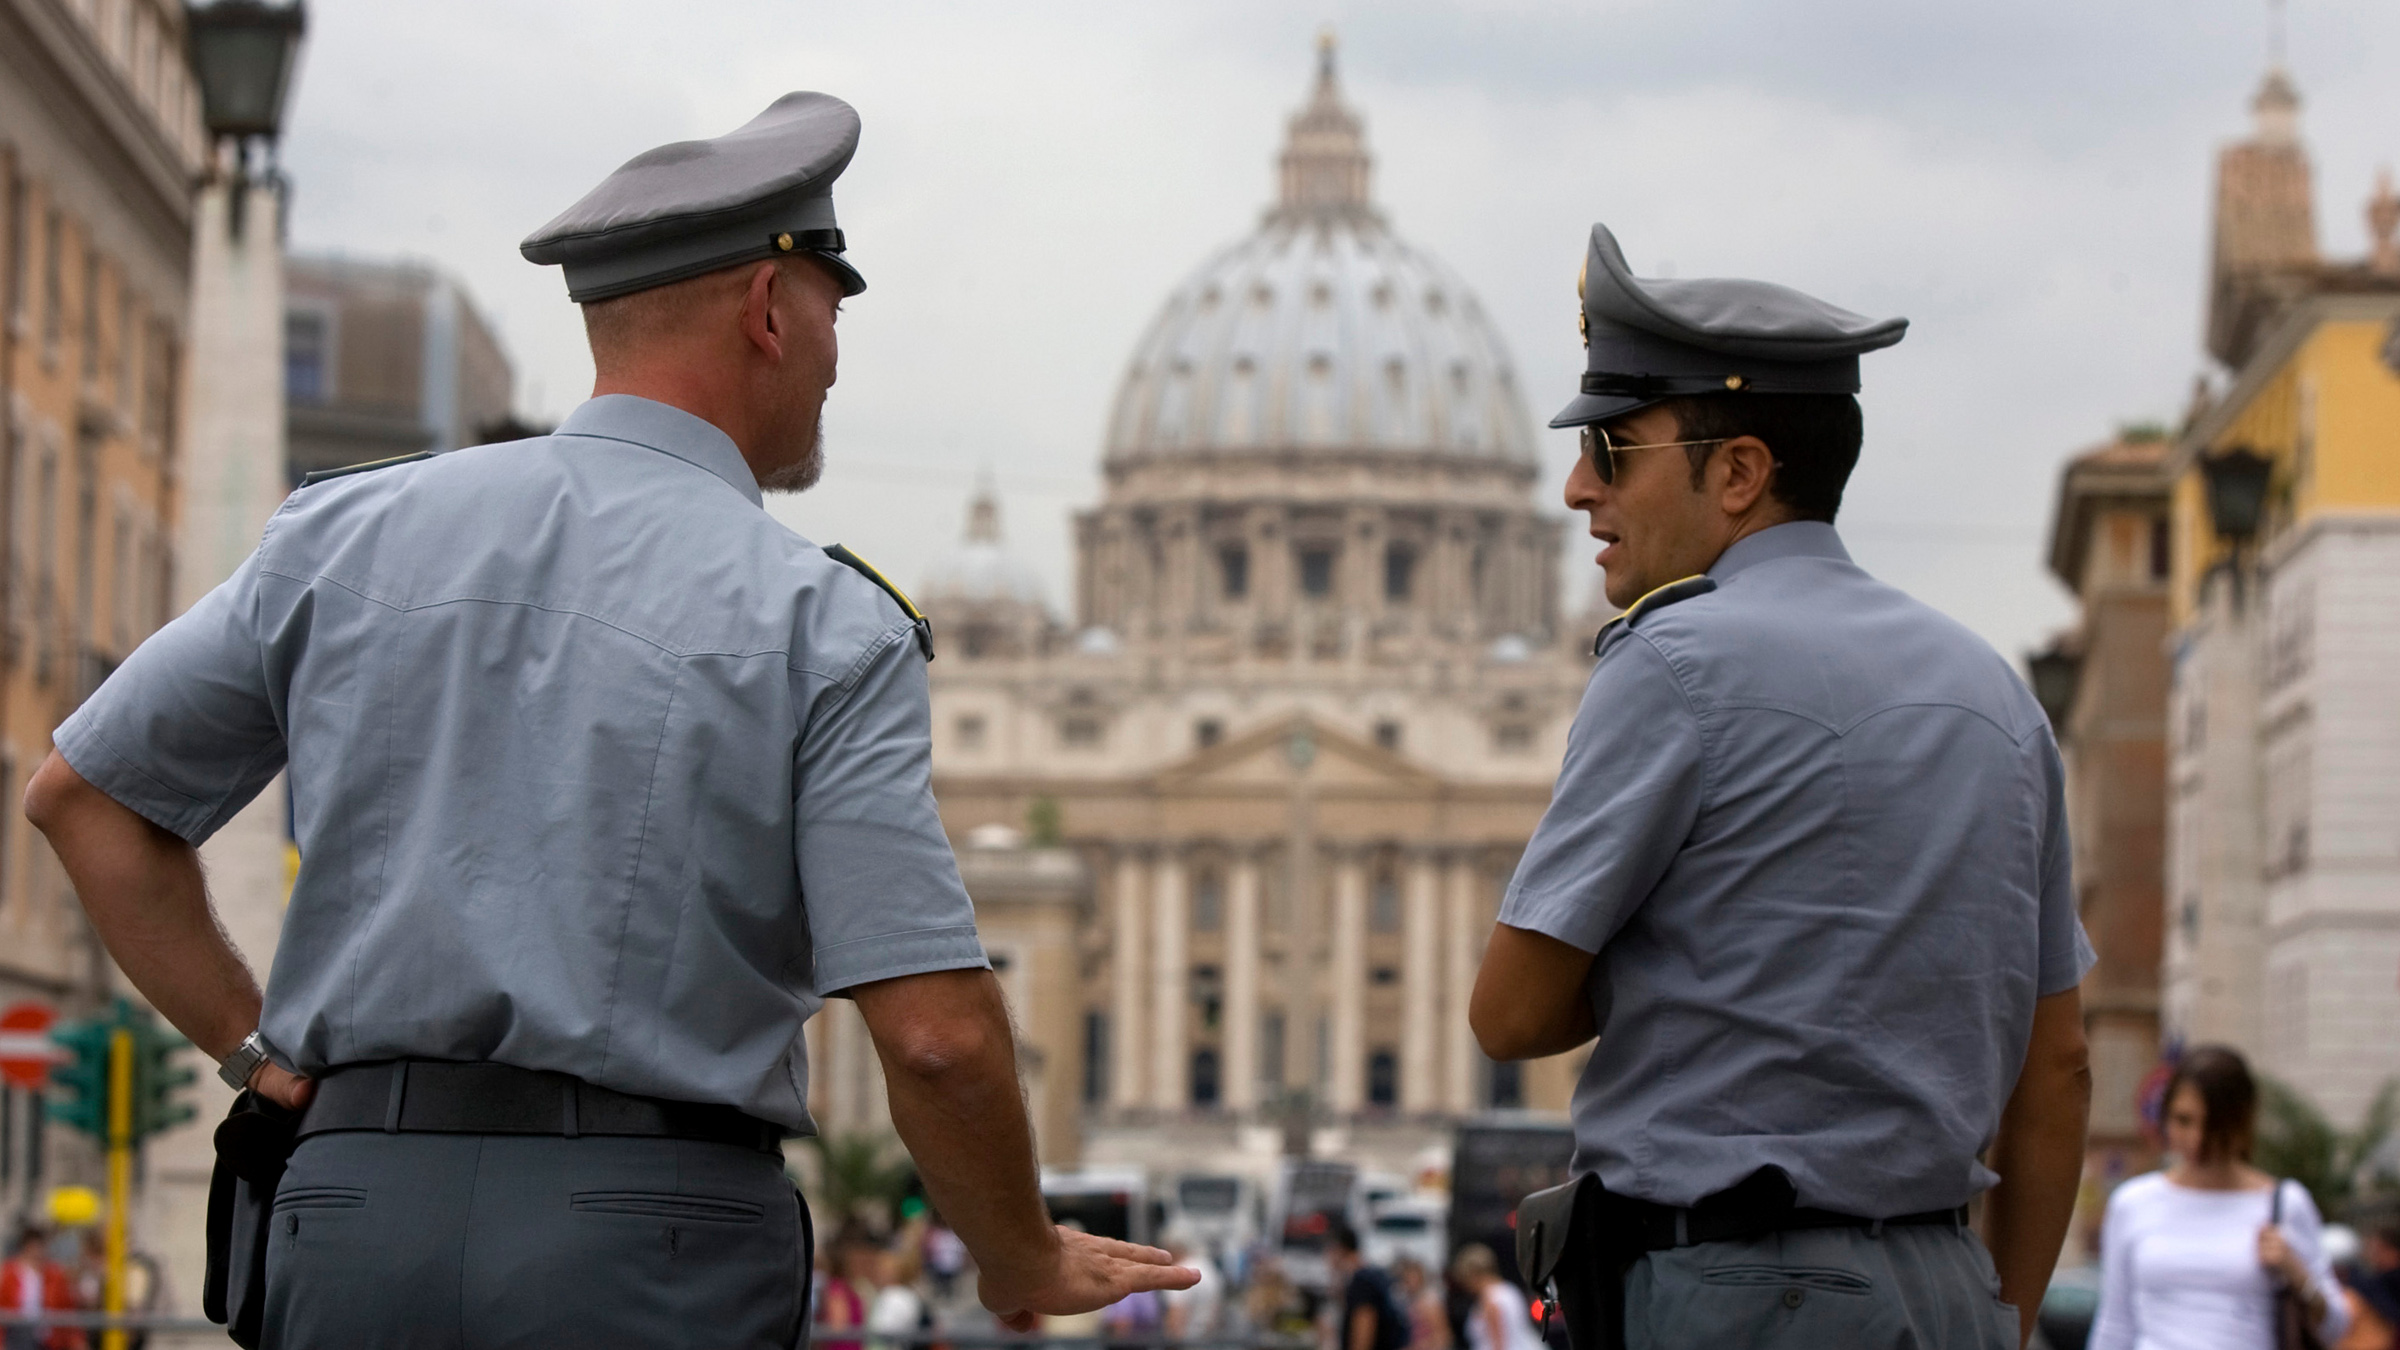 "In this Tuesday, Sept. 21, 2010 file photo Italian financial Police officers talk to each other in front of St. Peter's square at the Vatican. A Rome court has upheld the seizure of €23 million (€31 million) from a Vatican bank account, and the Holy See is expressing ""astonishment"" over the decision. Vatican spokesman the Rev. Federico Lombardi says the Holy See ""learned of the ruling with astonishment."" Lombardi said Wednesday, oCT. 20, 2010 that Vatican bank officials maintain they can clarify the matter soon. The seizure last month was based on alleged violations of Italy's laws against money laundering. Lombardi indicated that the Vatican is contending the problem is a matter of how the regulations are interpreted."